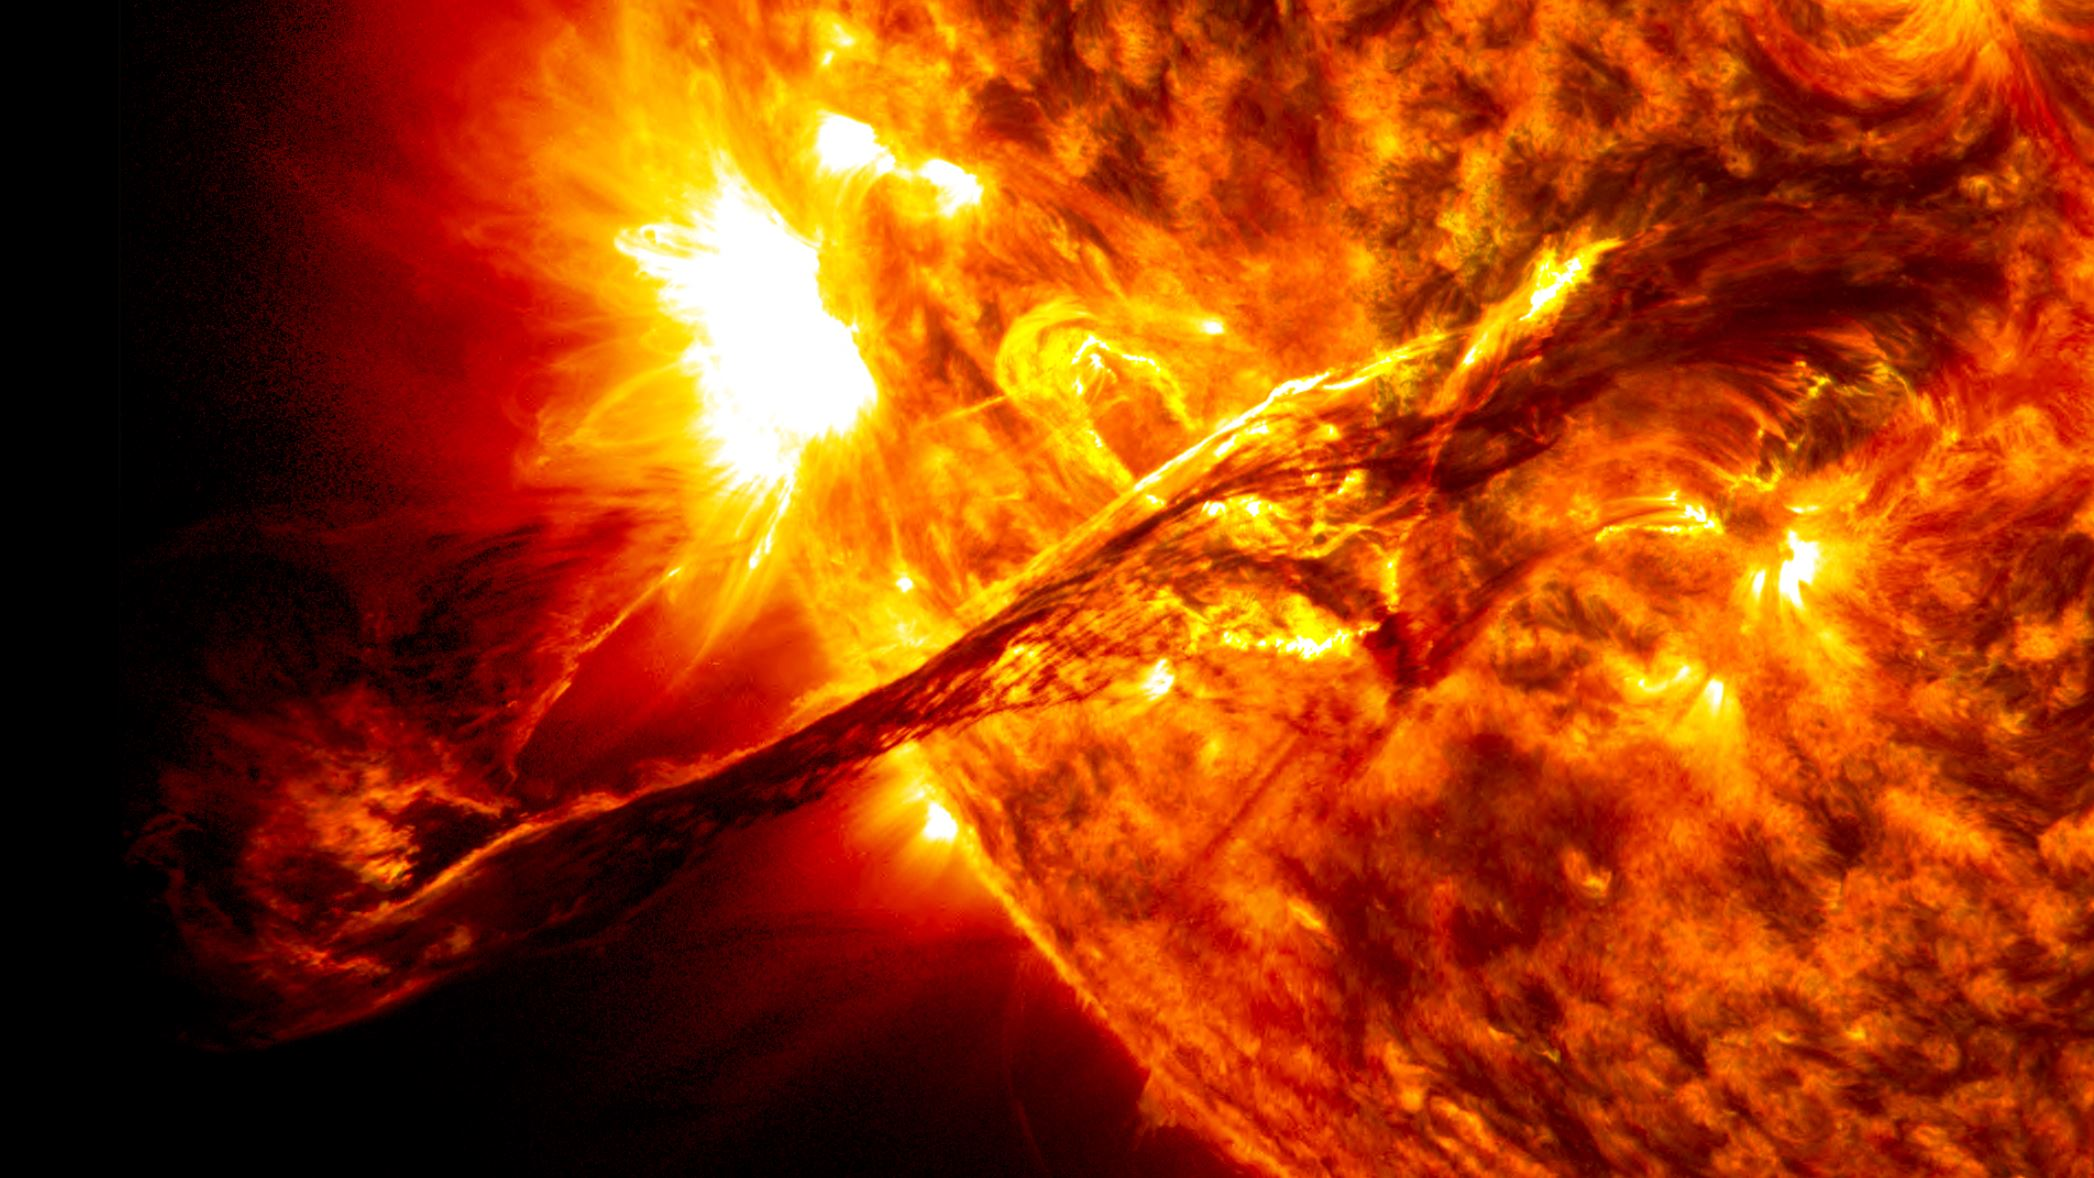 On August 31, 2012 a long filament of solar material that had been hovering in the sun's atmosphere, the corona, erupted out into space. This coronal mass ejection — an immense cloud of magnetized particles — traveled at over 900 miles per second. The ability to forecast these kinds of events on the Sun is increasingly important as NASA prepares to send humans to the Moon under the Artemis program. - Image Credit: NASA's Goddard Space Flight Center